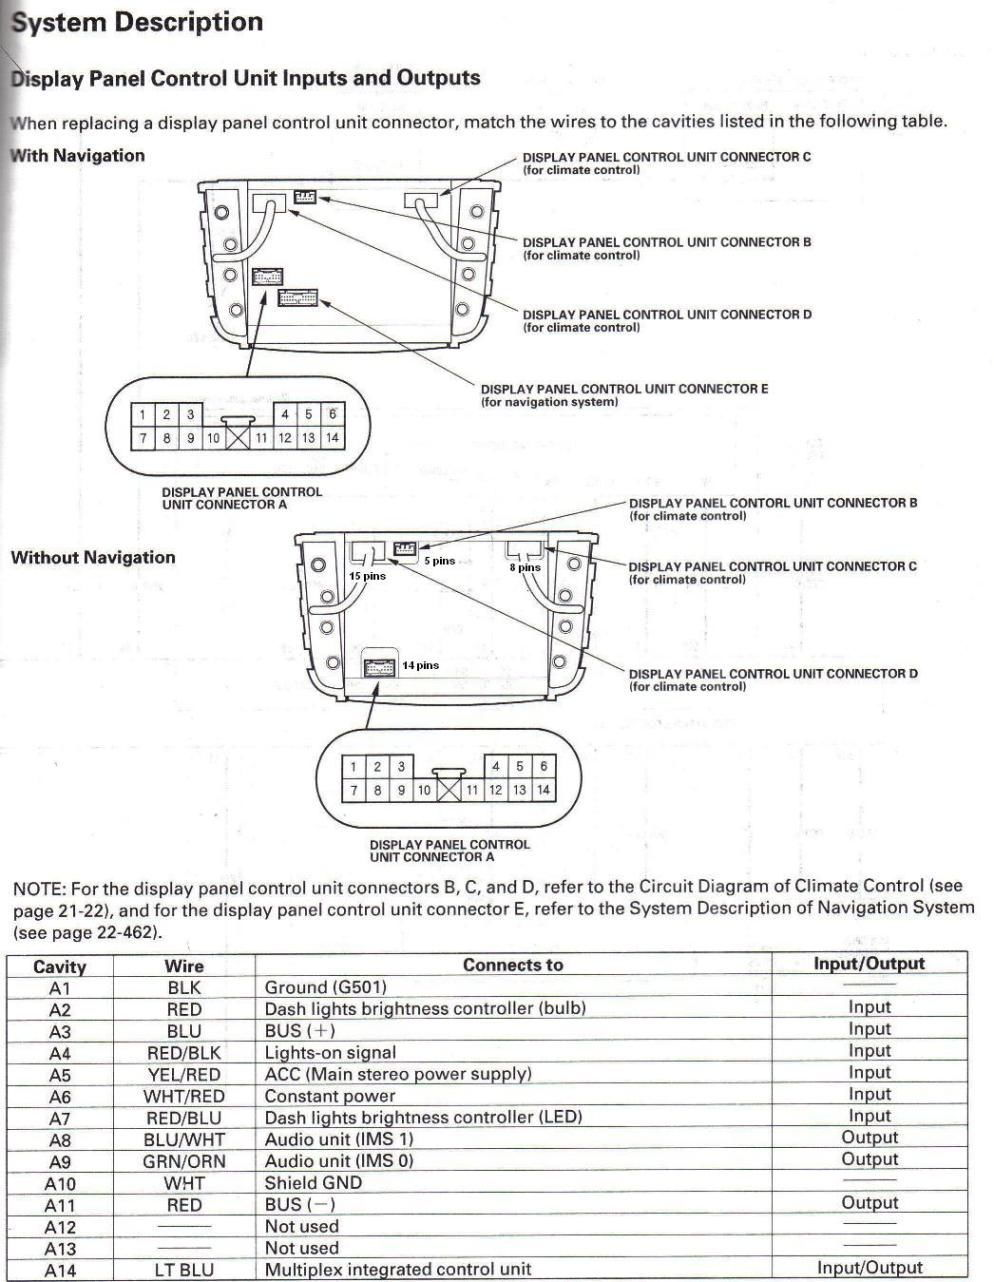 hight resolution of 2007 acura mdx stereo wiring diagram 36 wiring diagram 2005 acura tl subwoofer replacement 05 acura tl dash navigation